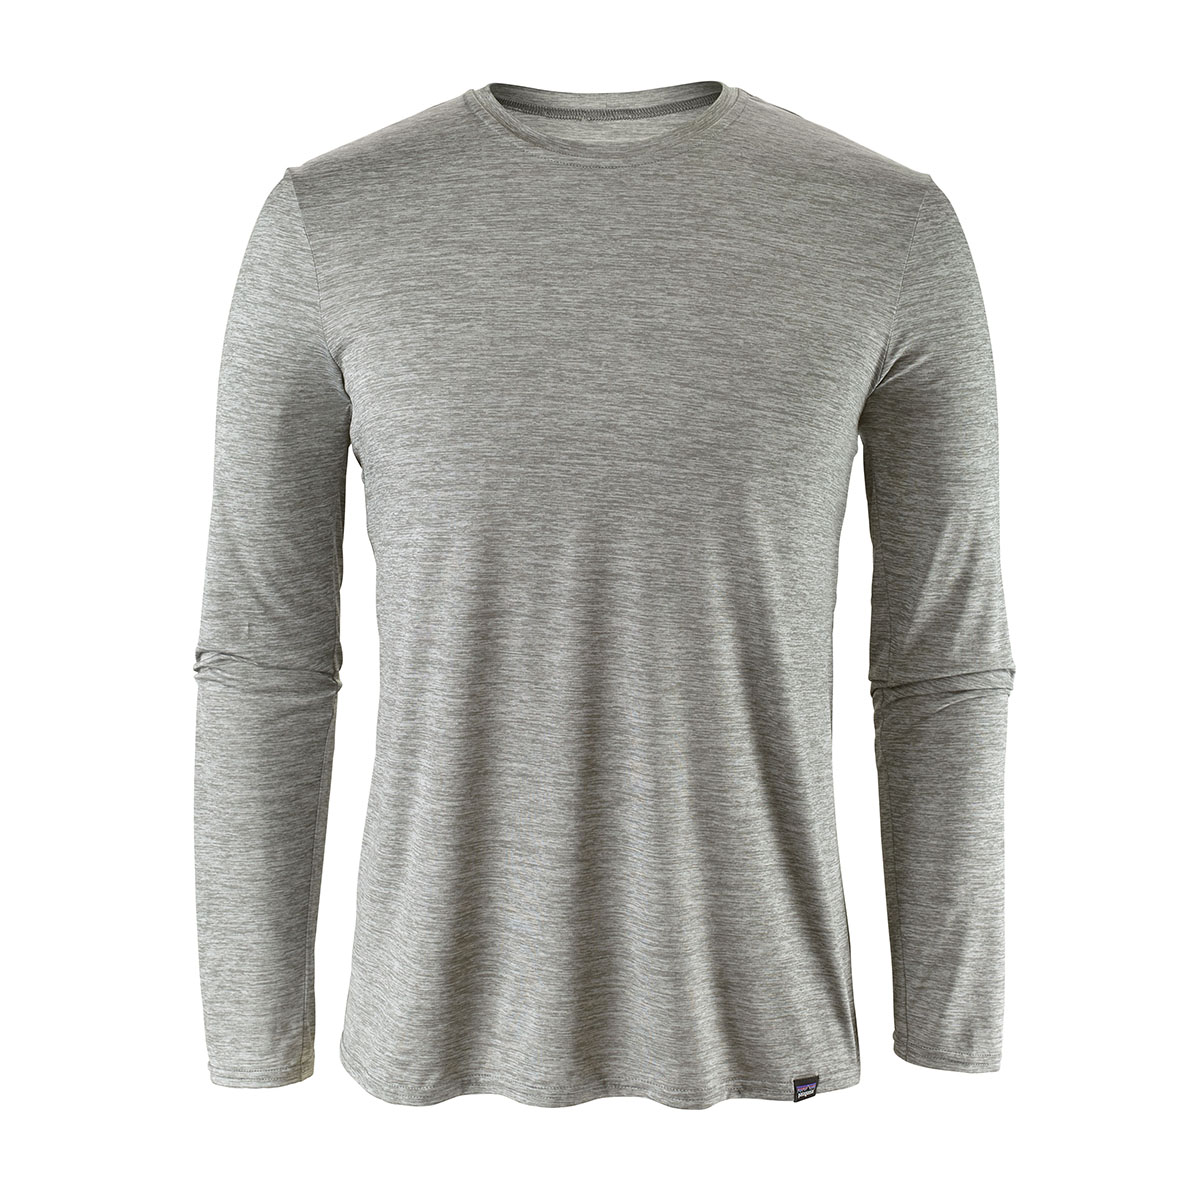 Patagonia Men's Capilene Daily Long Sleeved T-Shirt 45261 F8